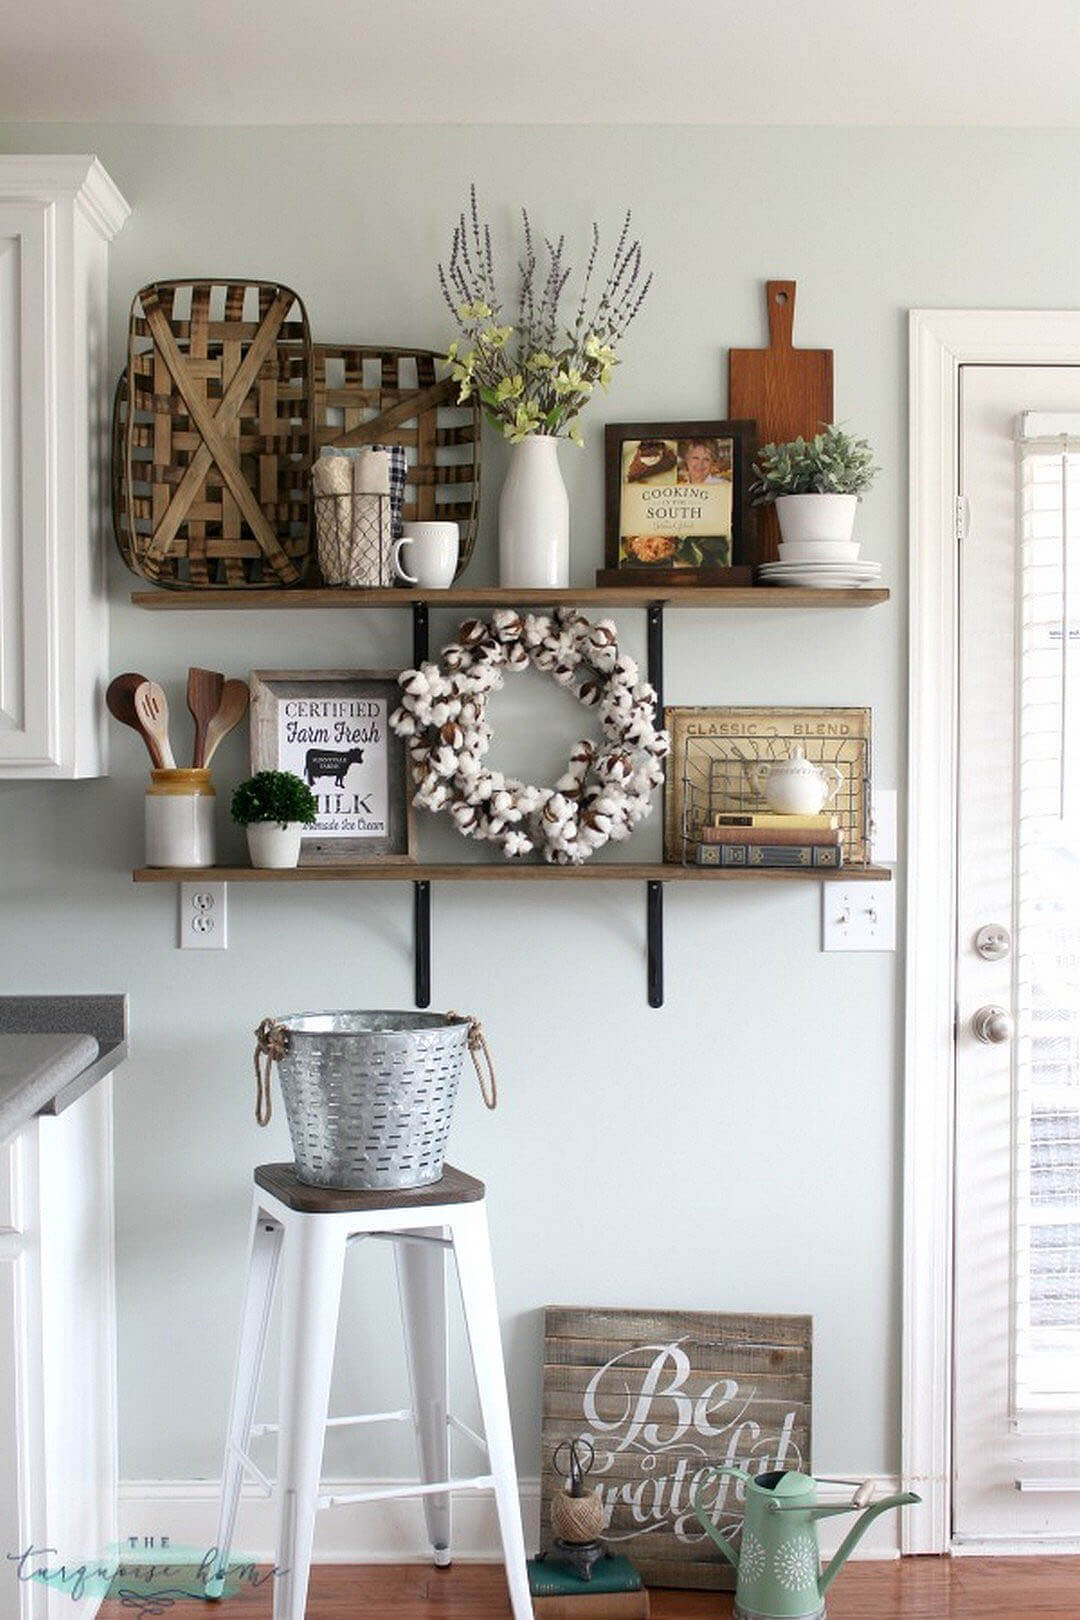 Rustic Farmhouse Kitchen Shelf Display